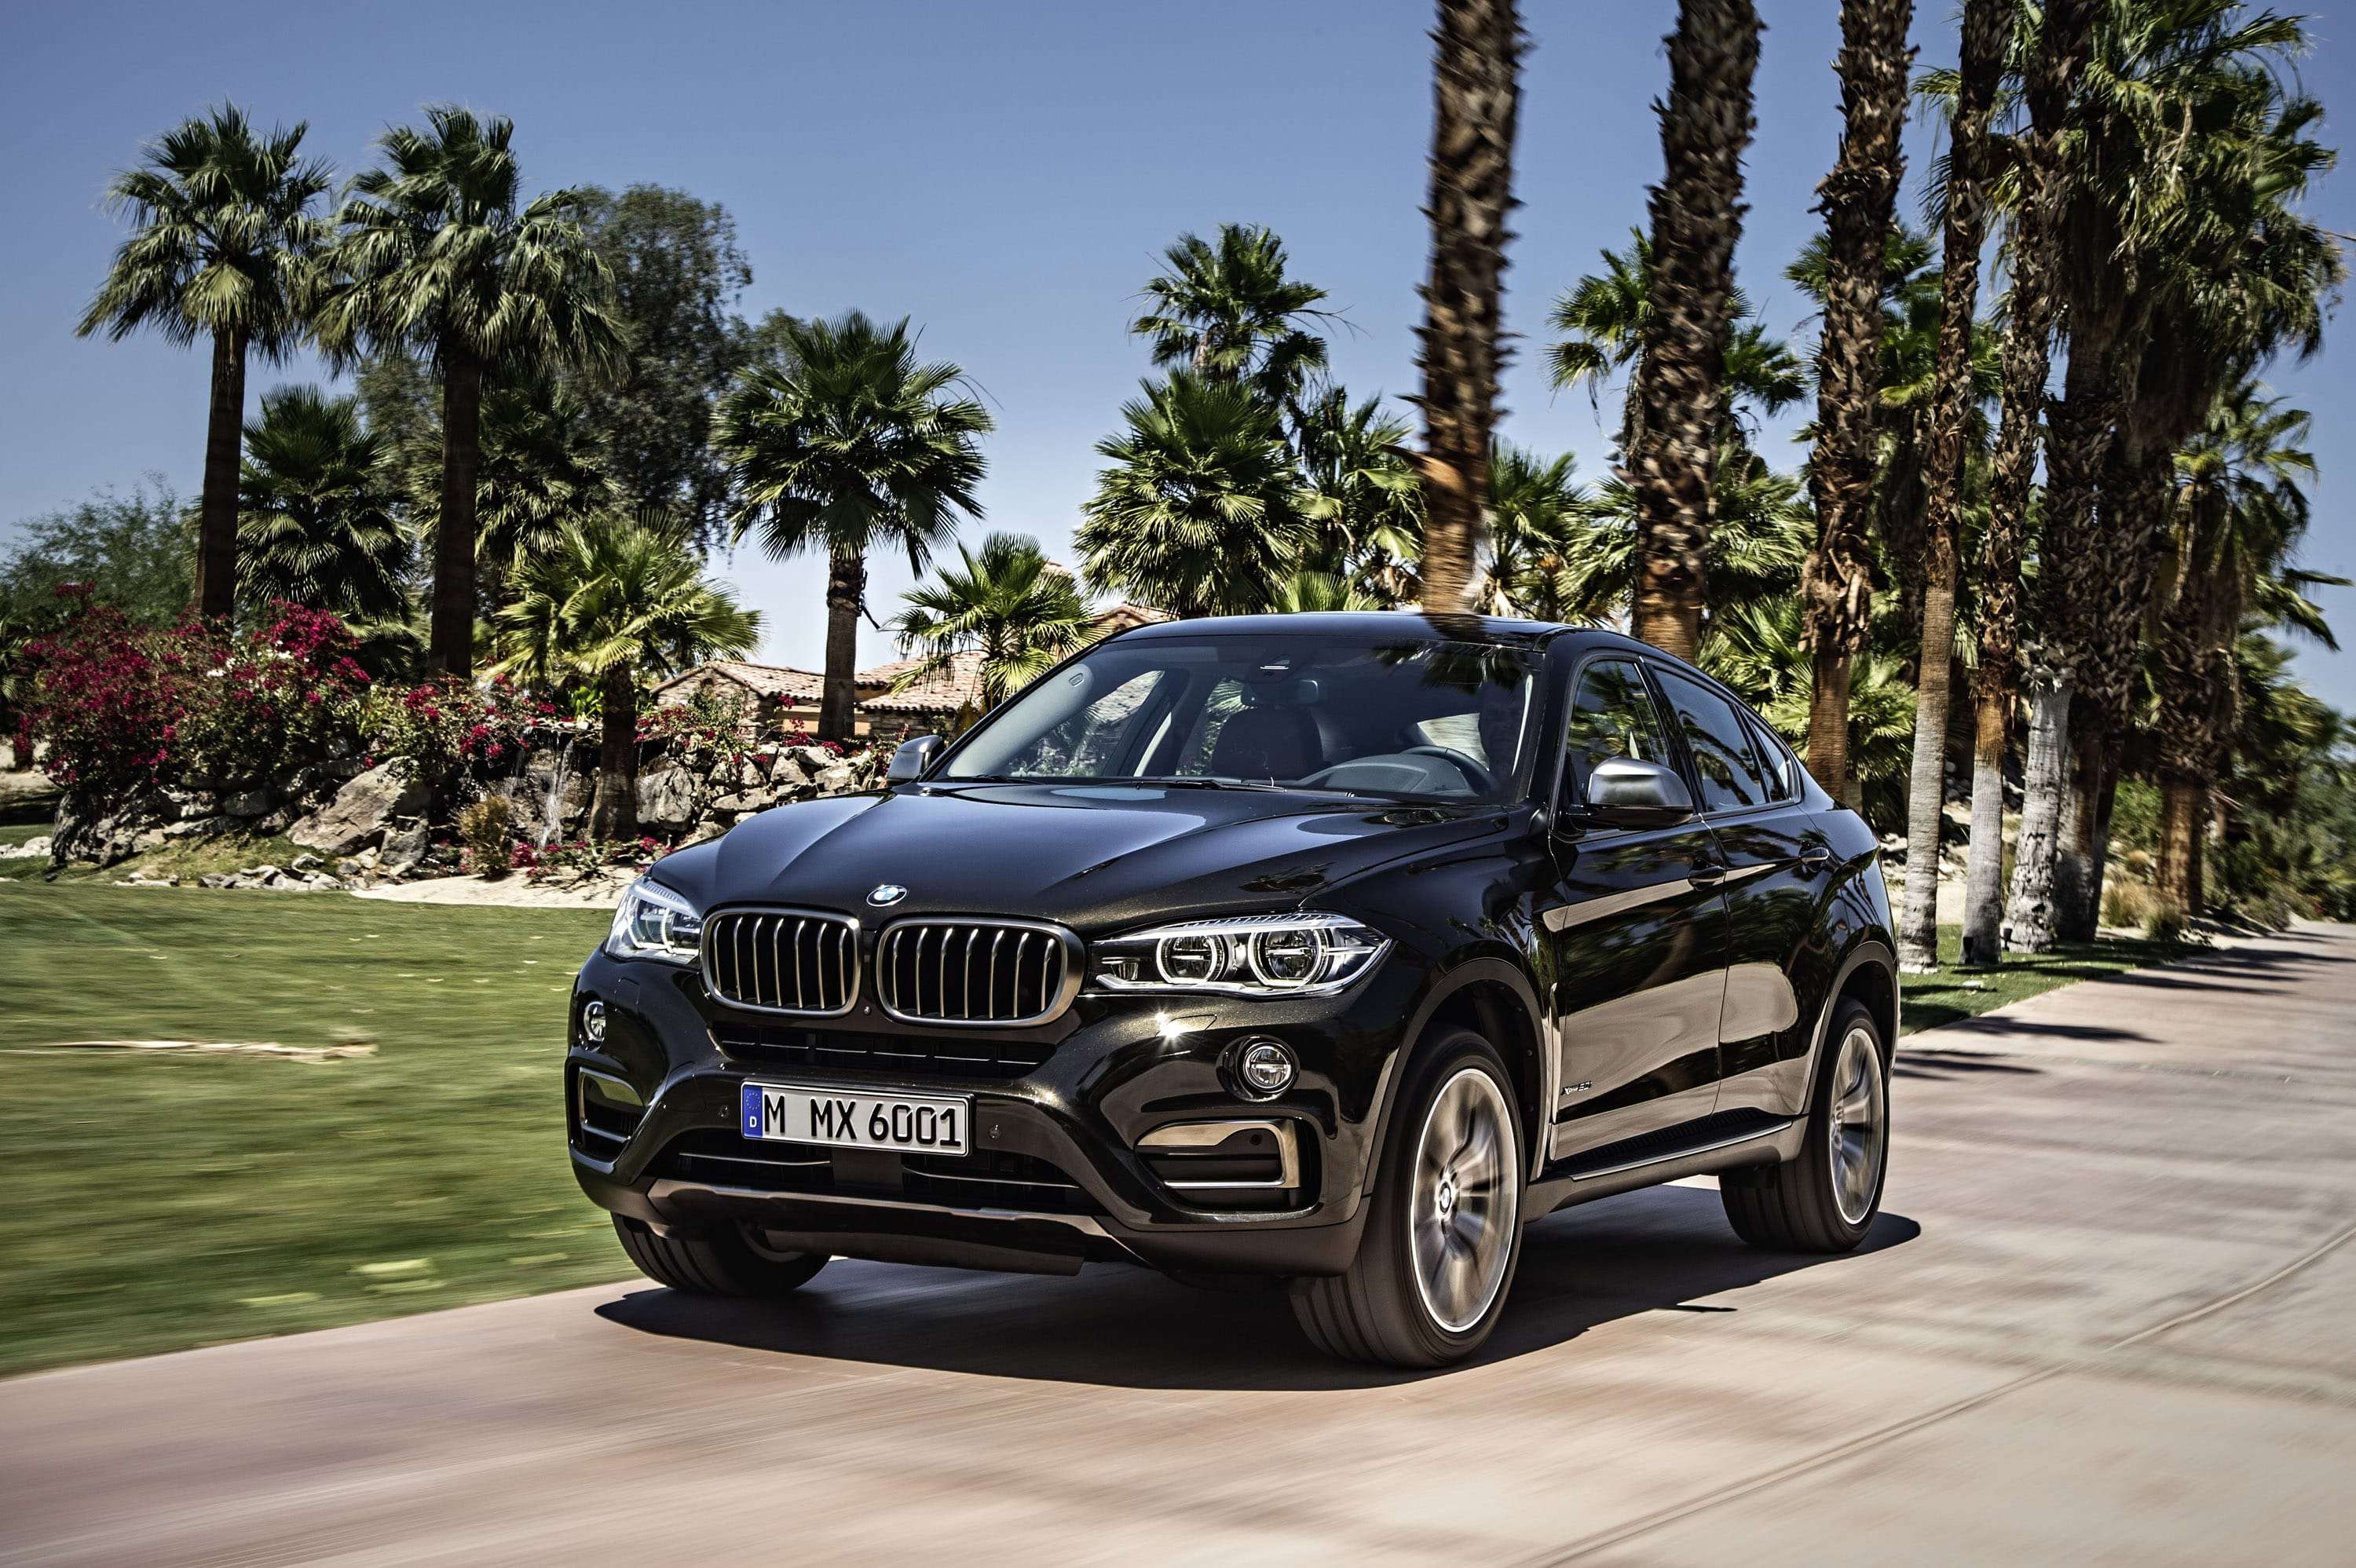 BMW X6 (F16) widescreen wallpapers